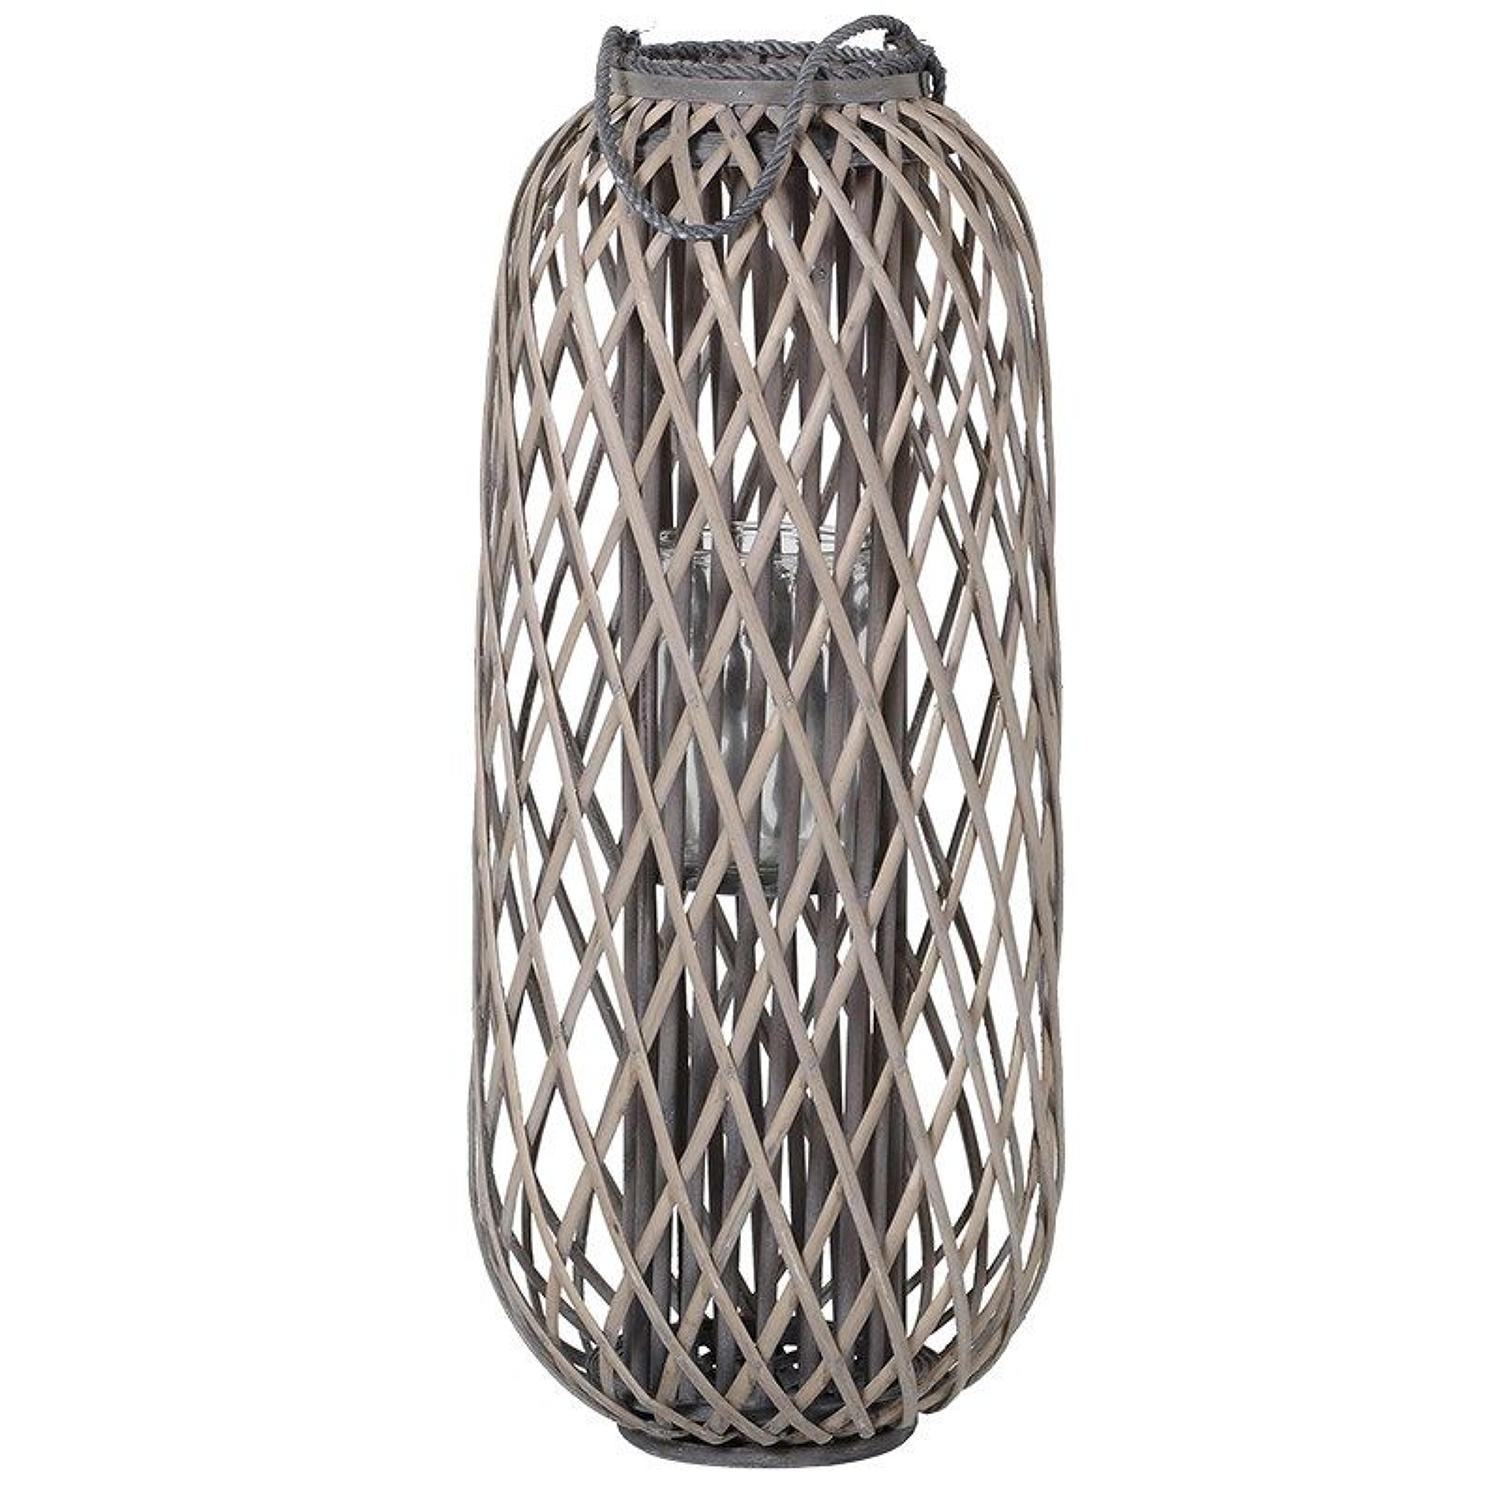 Large willow hurricane candle lantern